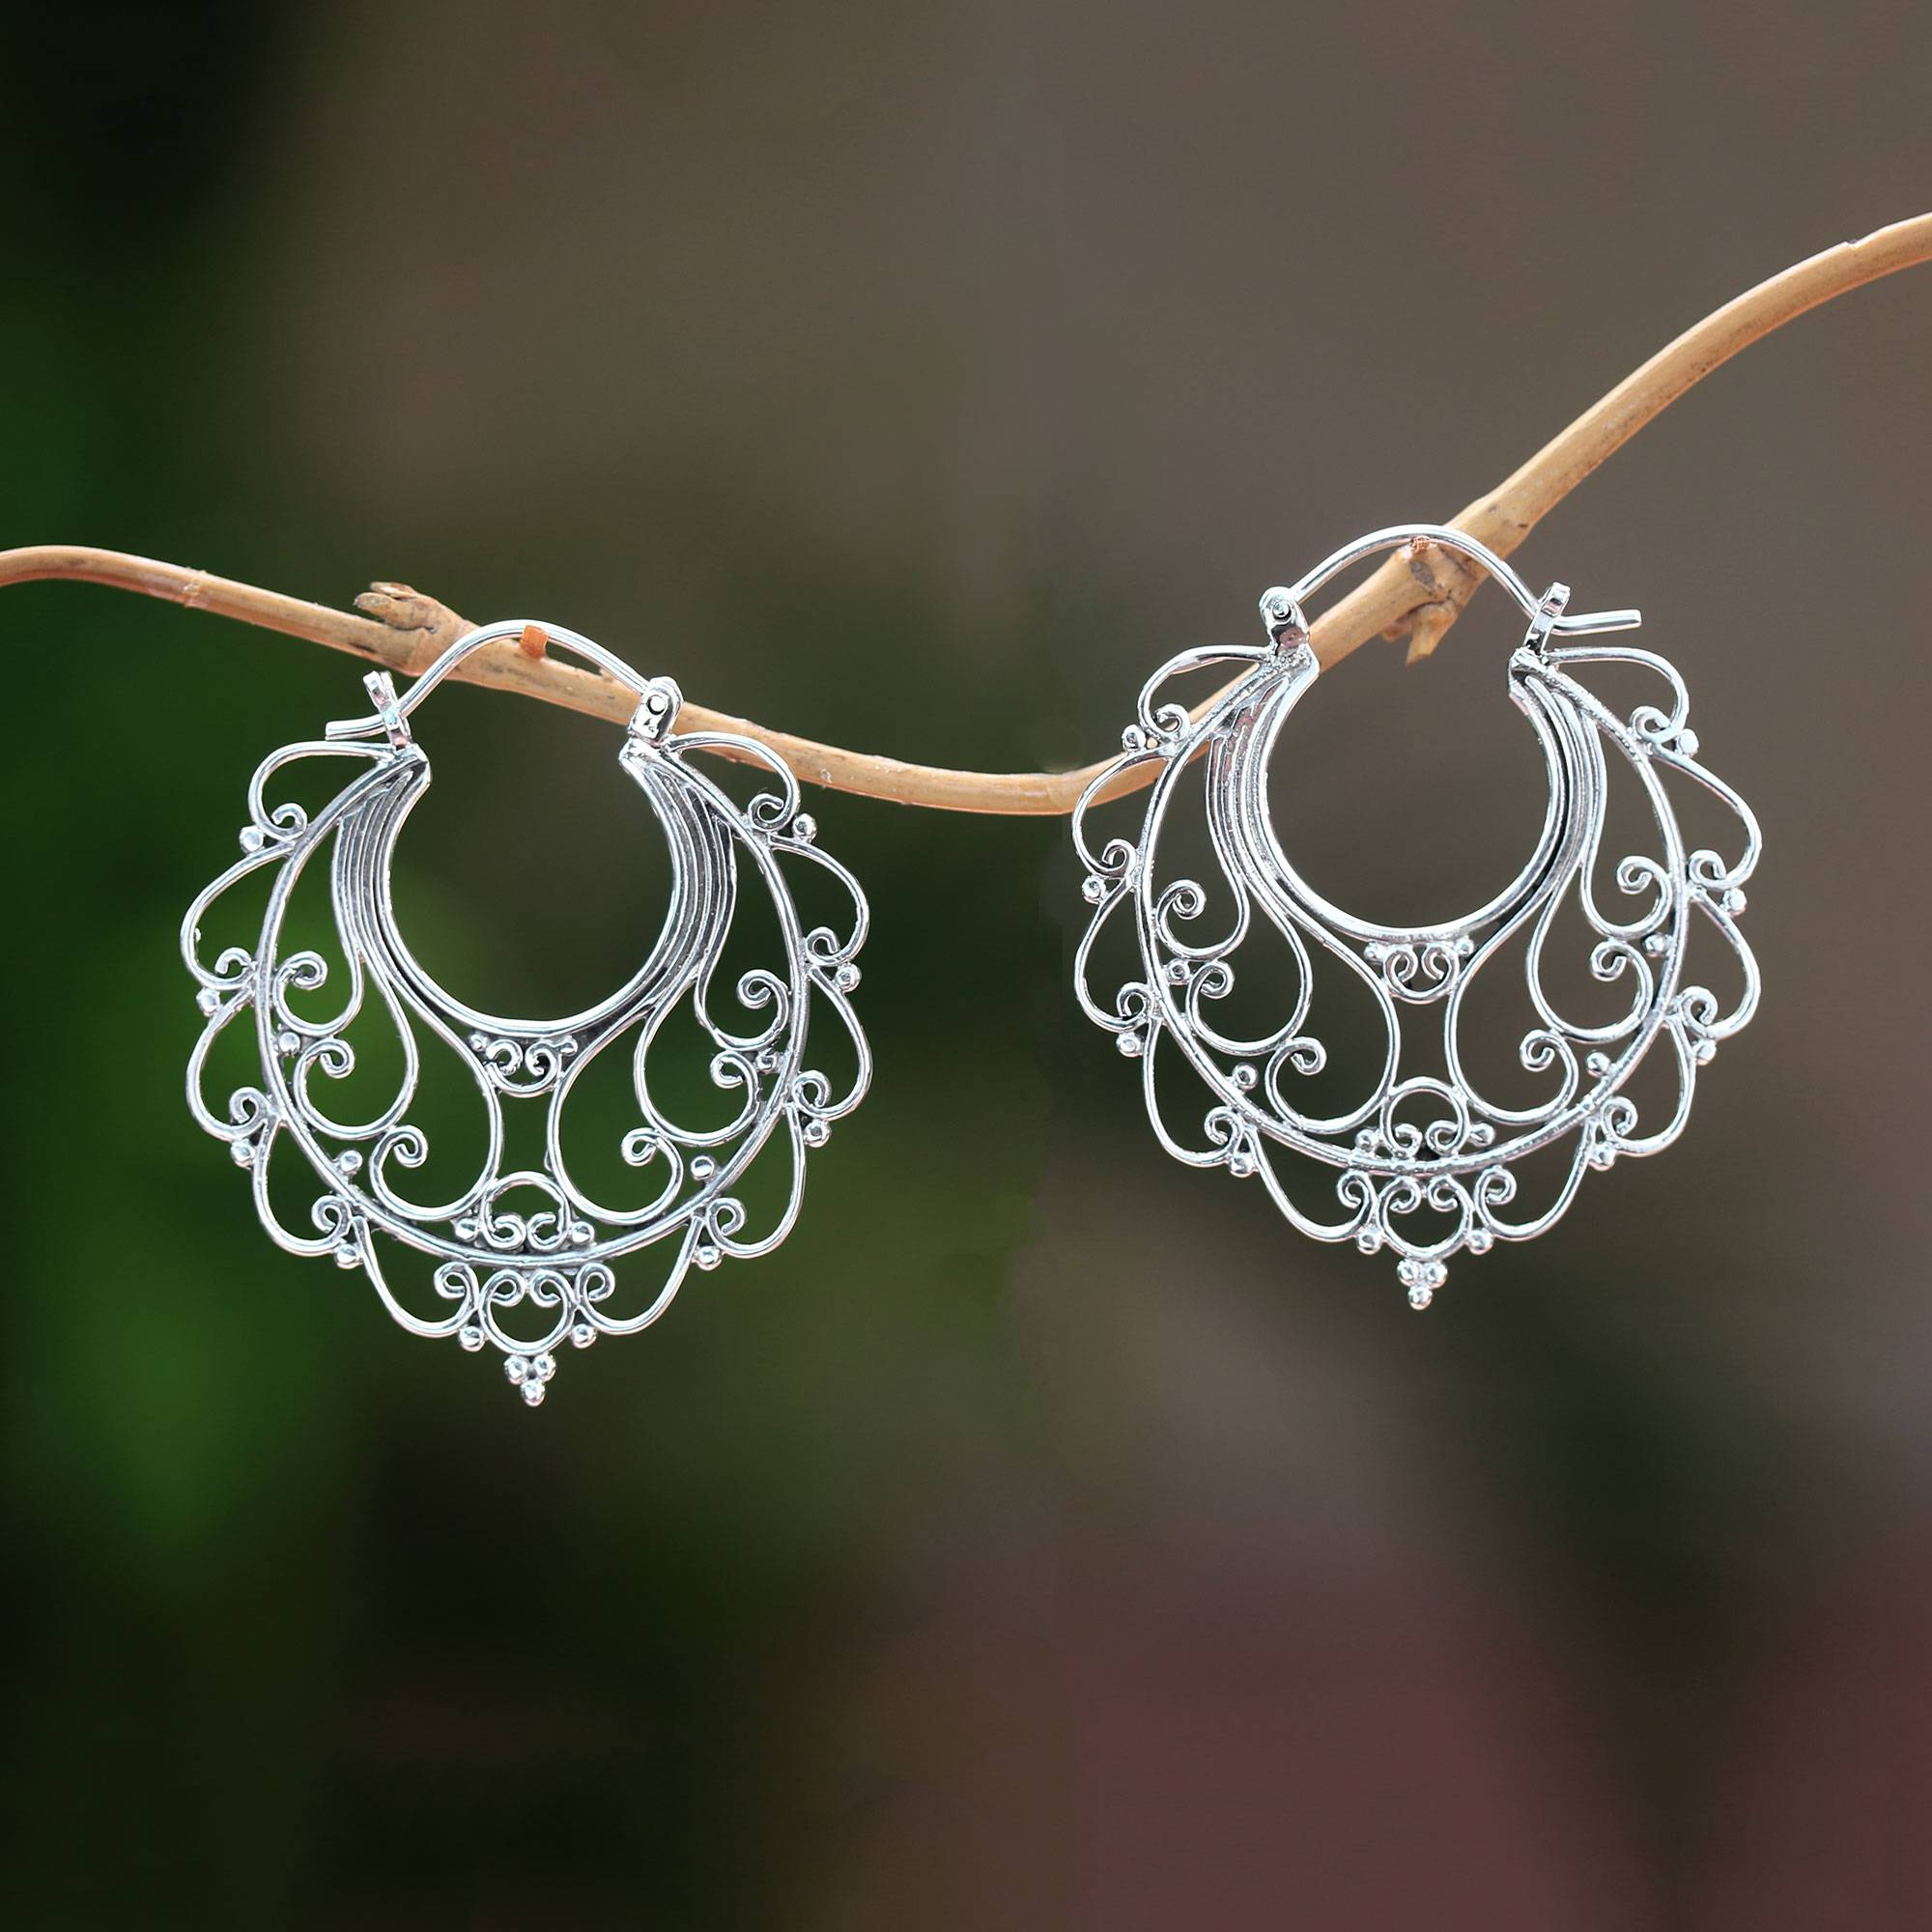 HOOP EARRINGS ABOUT THE SIZE OF A DIME IDEAL FOR CHILDREN IN STERLING SILVER